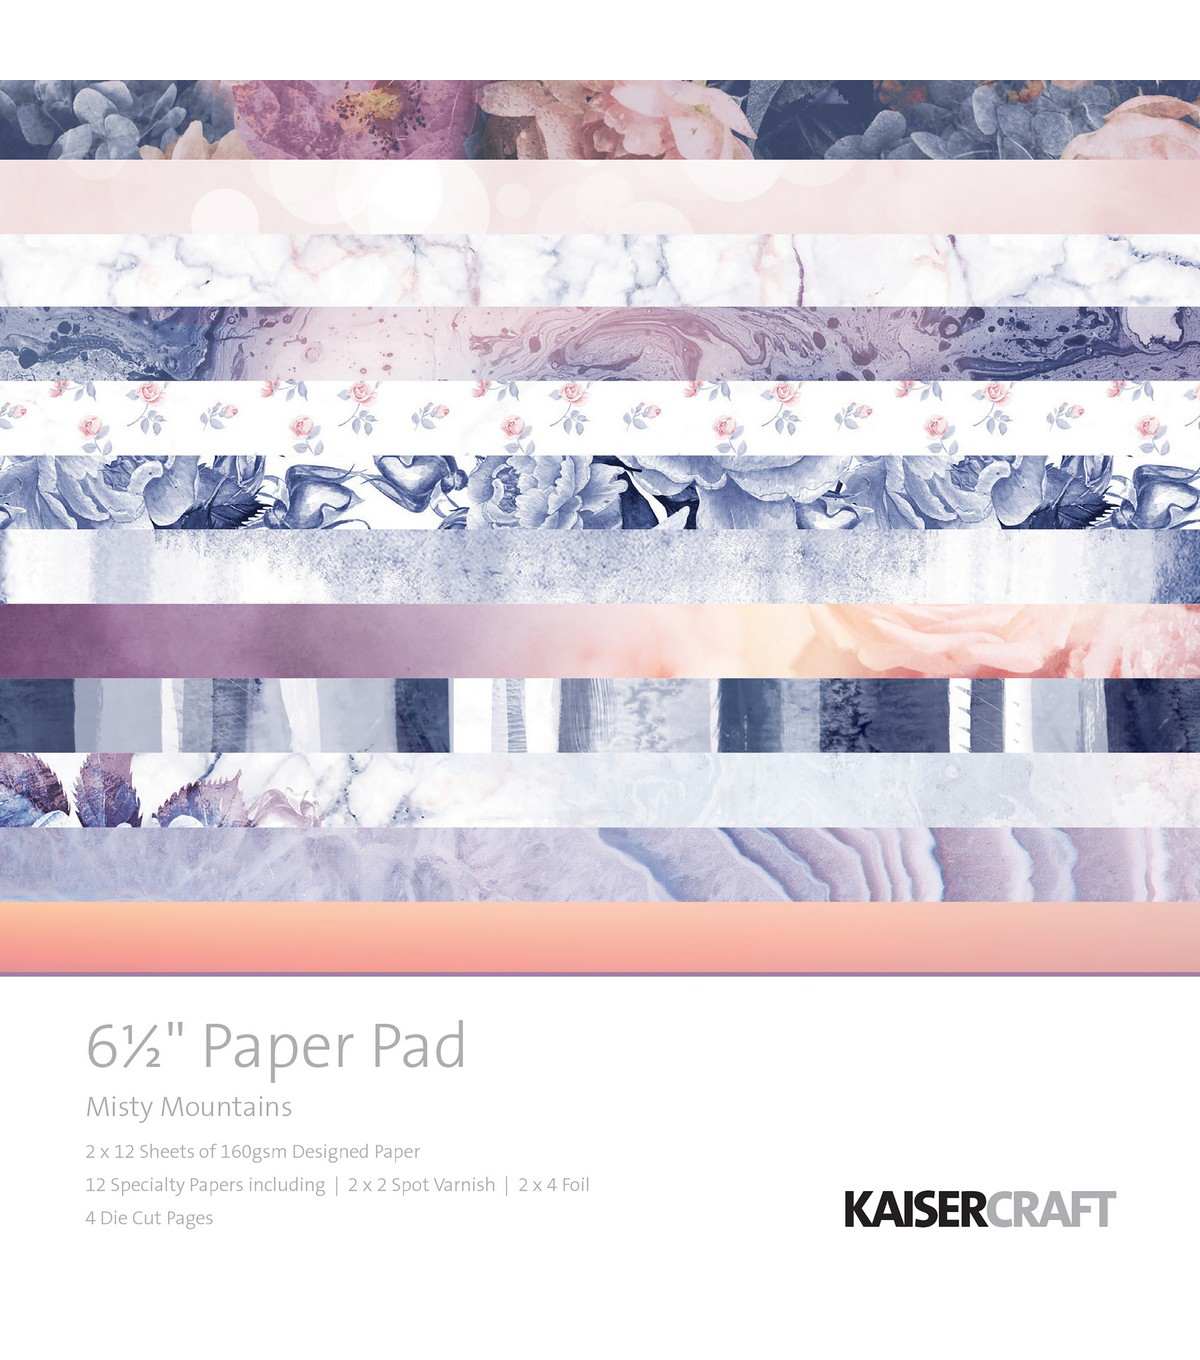 Kaisercraft Misty Mountains 40-sheets 6.5\u0027\u0027 Paper Pad